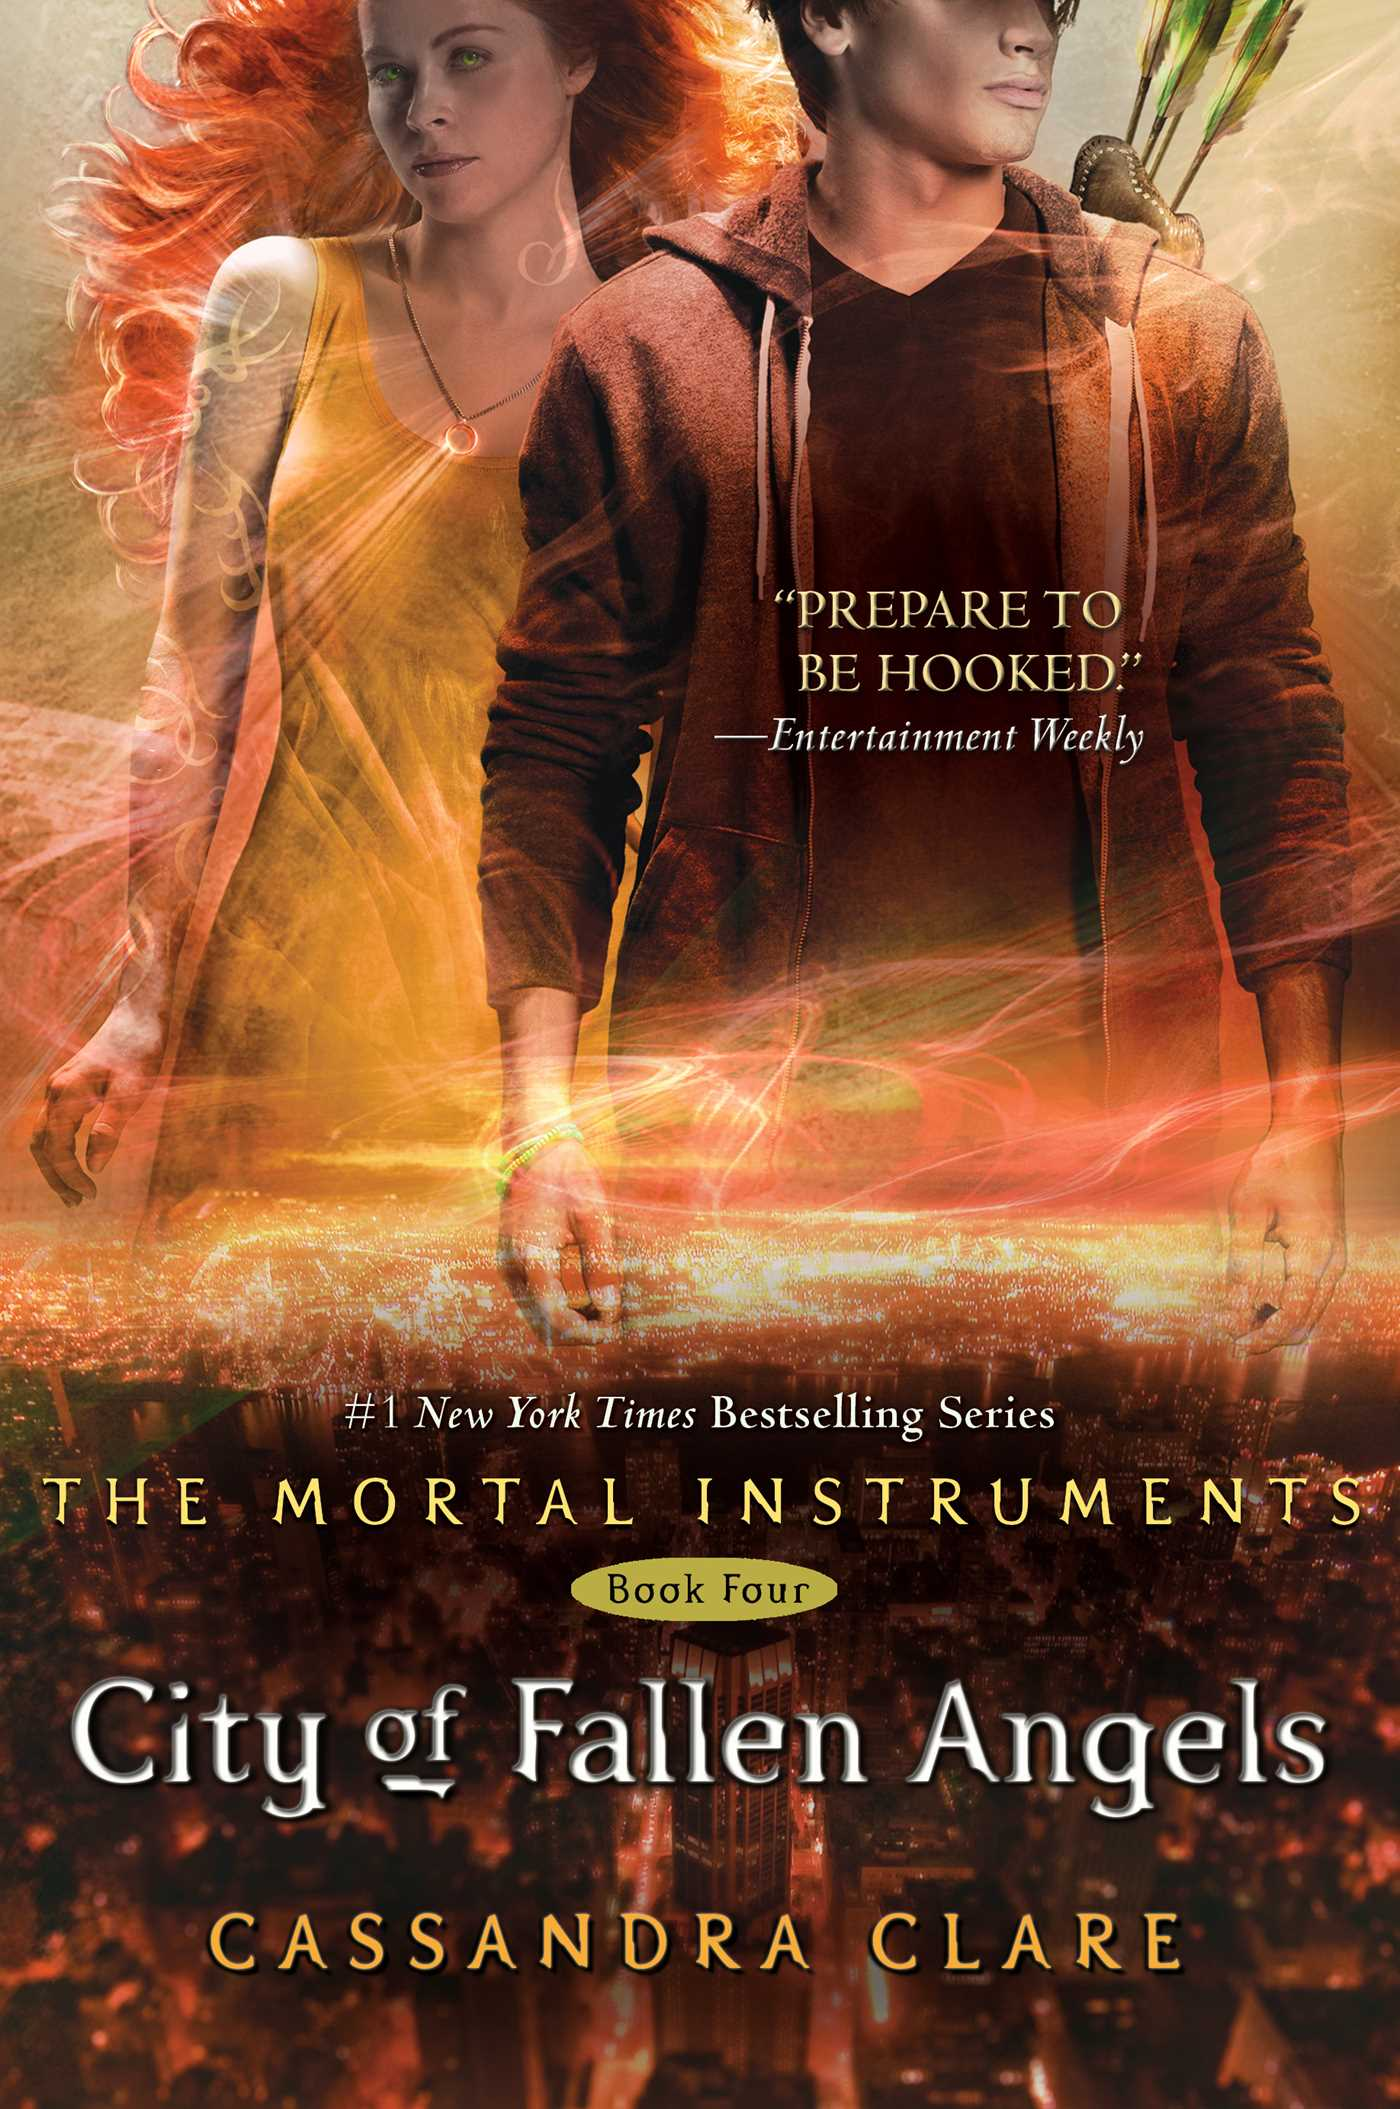 City-of-fallen-angels-9781442403543_hr